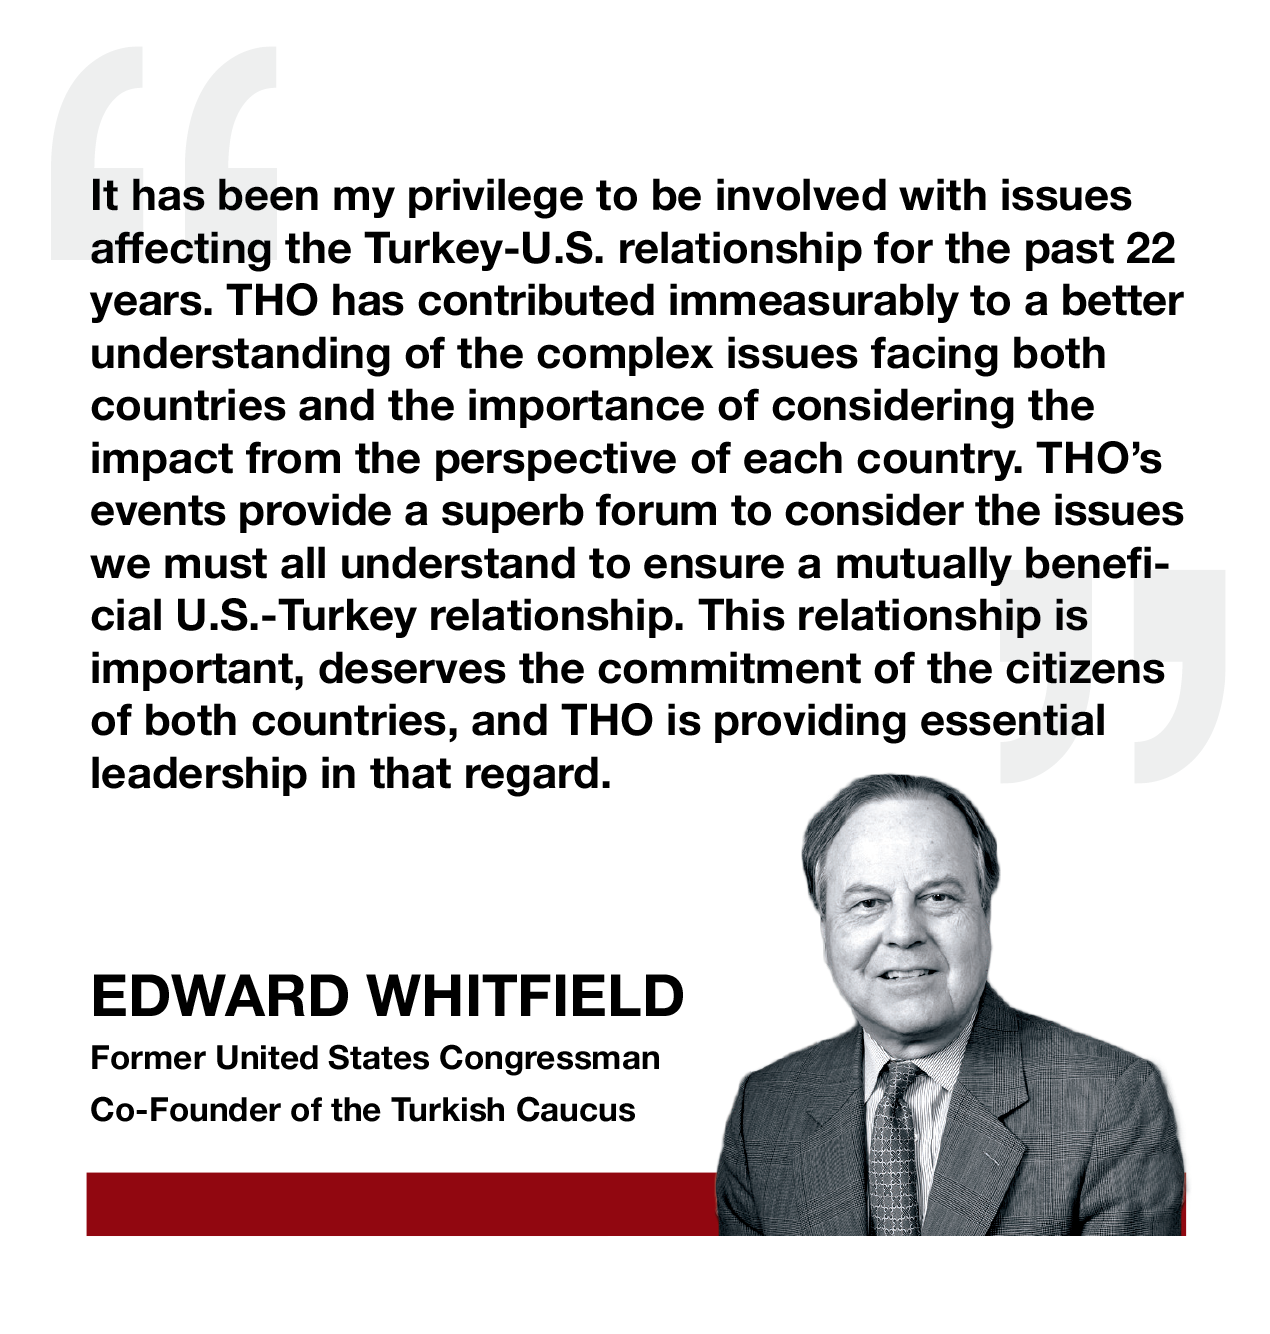 EDWARD WHITFIELD, Former United States Congressman, Co-Founder of the Turkish Caucus